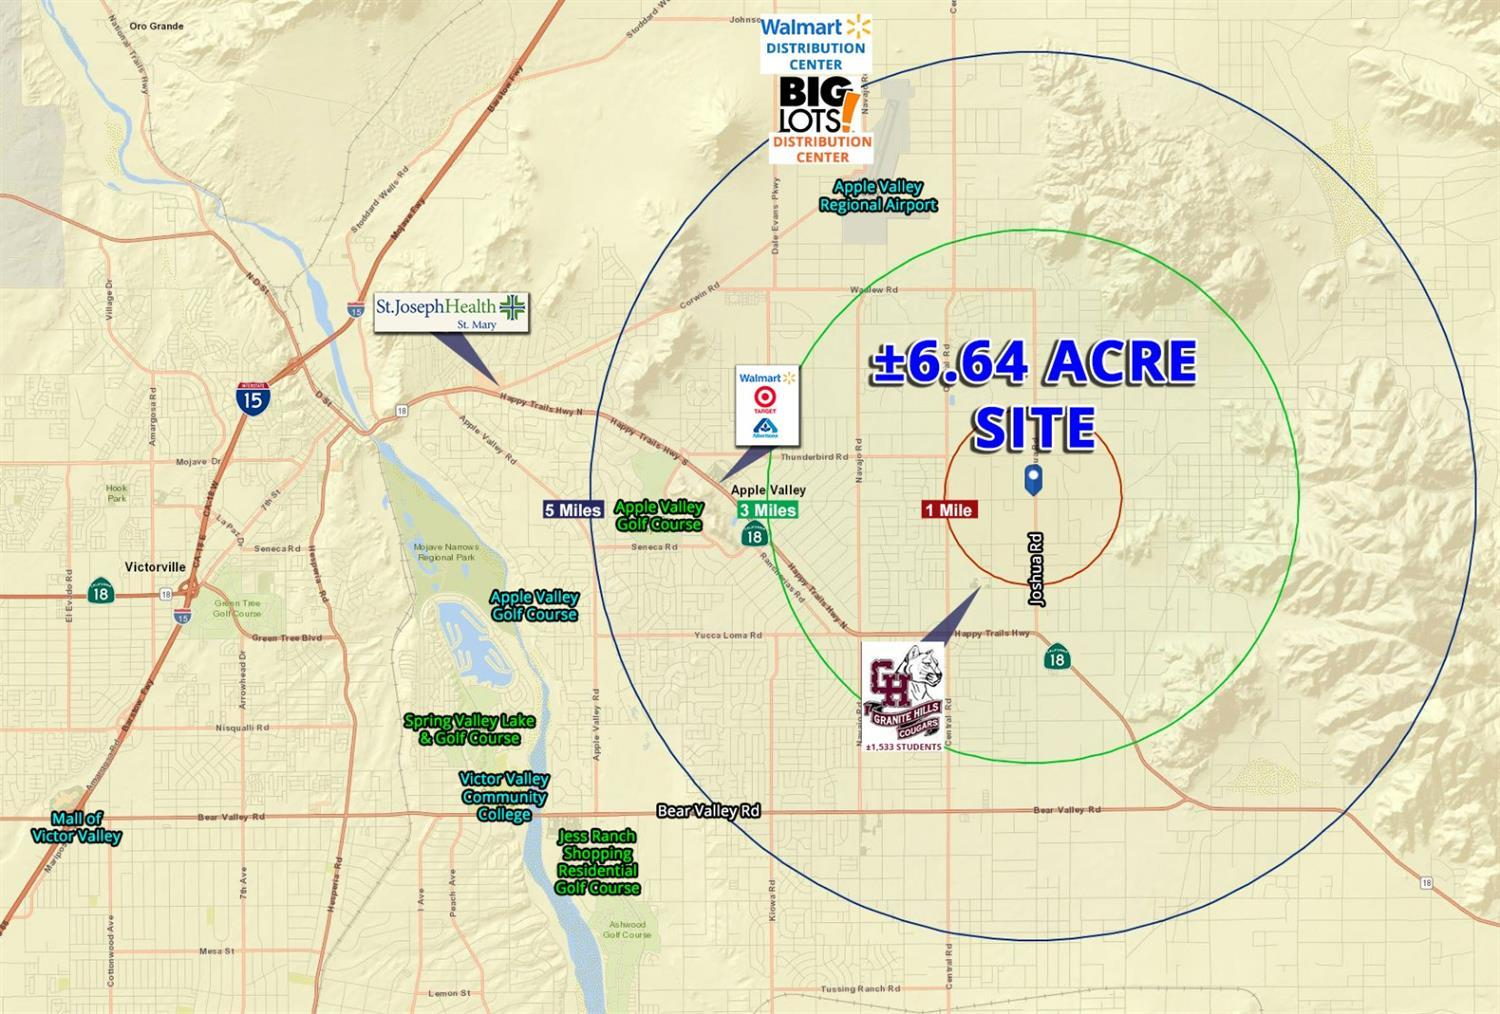 6.64 acres in Apple Valley for $200,000 on brigham city map, fontana map, mt. san antonio map, palm springs map, ventura county map, sacramento map, sonoma co map, santa clara map, downtown l.a. map, moreno valley map, south coast metro map, rancho cucamonga map, banning map, riverside map, imperial valley map, downieville map, canyon crest map, mission gorge map, desert cities map, bernardino county map,